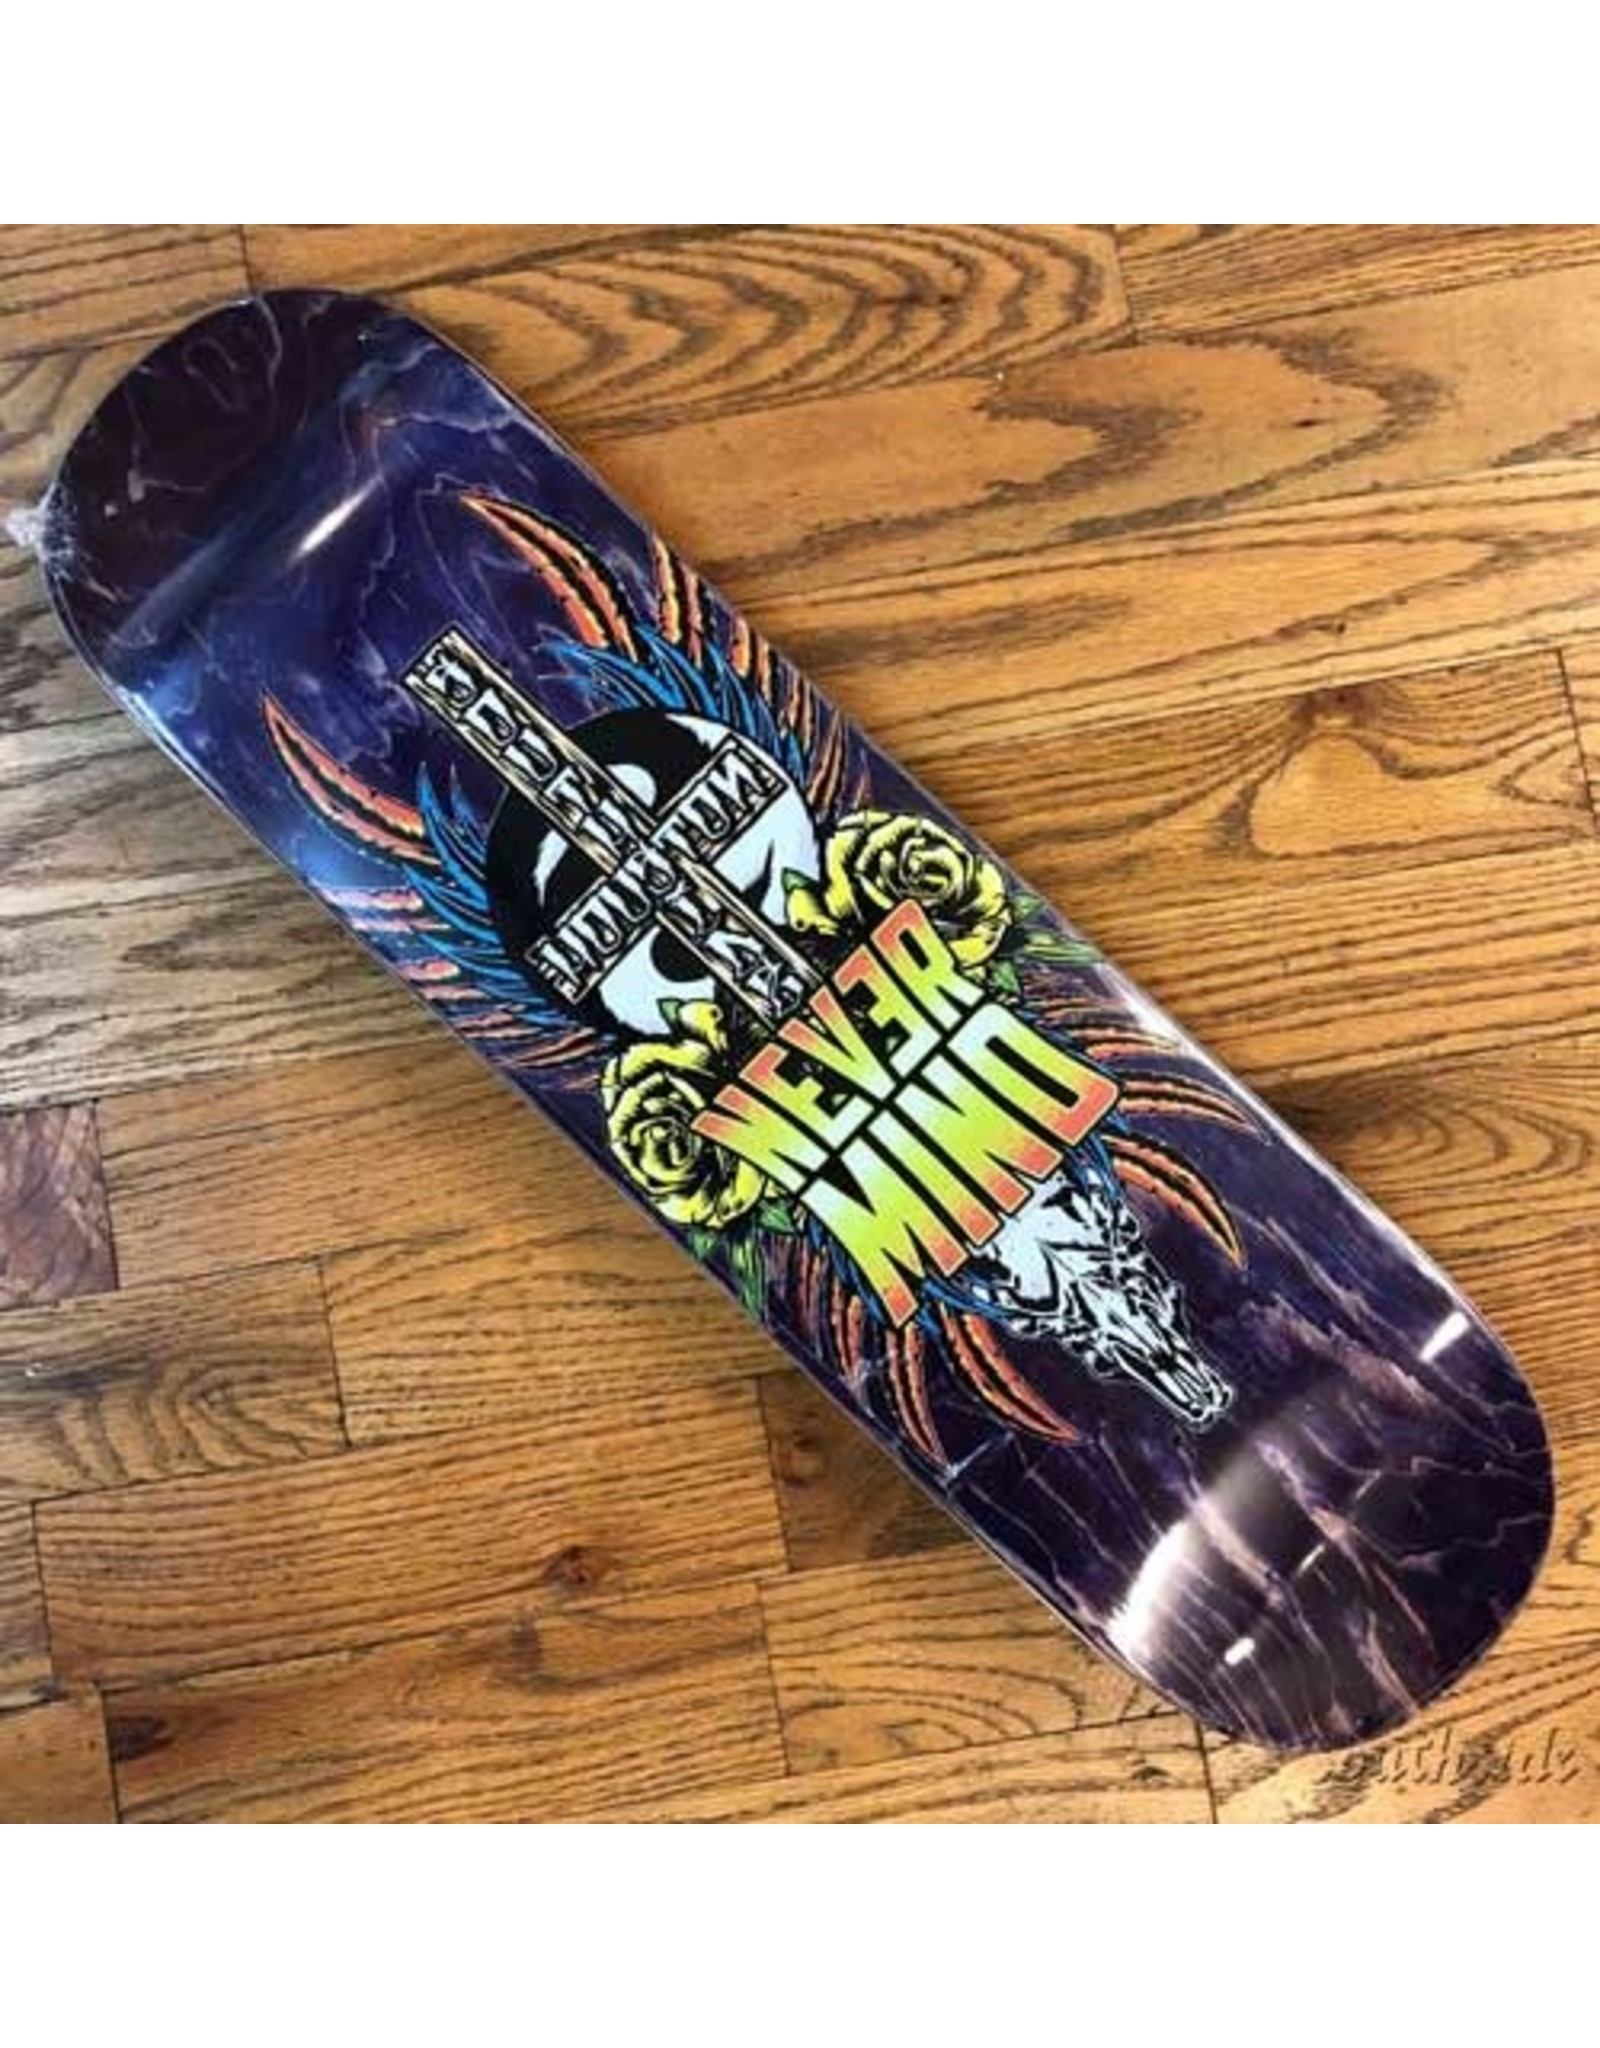 Southside Southside Nevermind Skateboards Deck 8.25x31.6 Yellow Flowers Various Stained Veneer BOX Shape